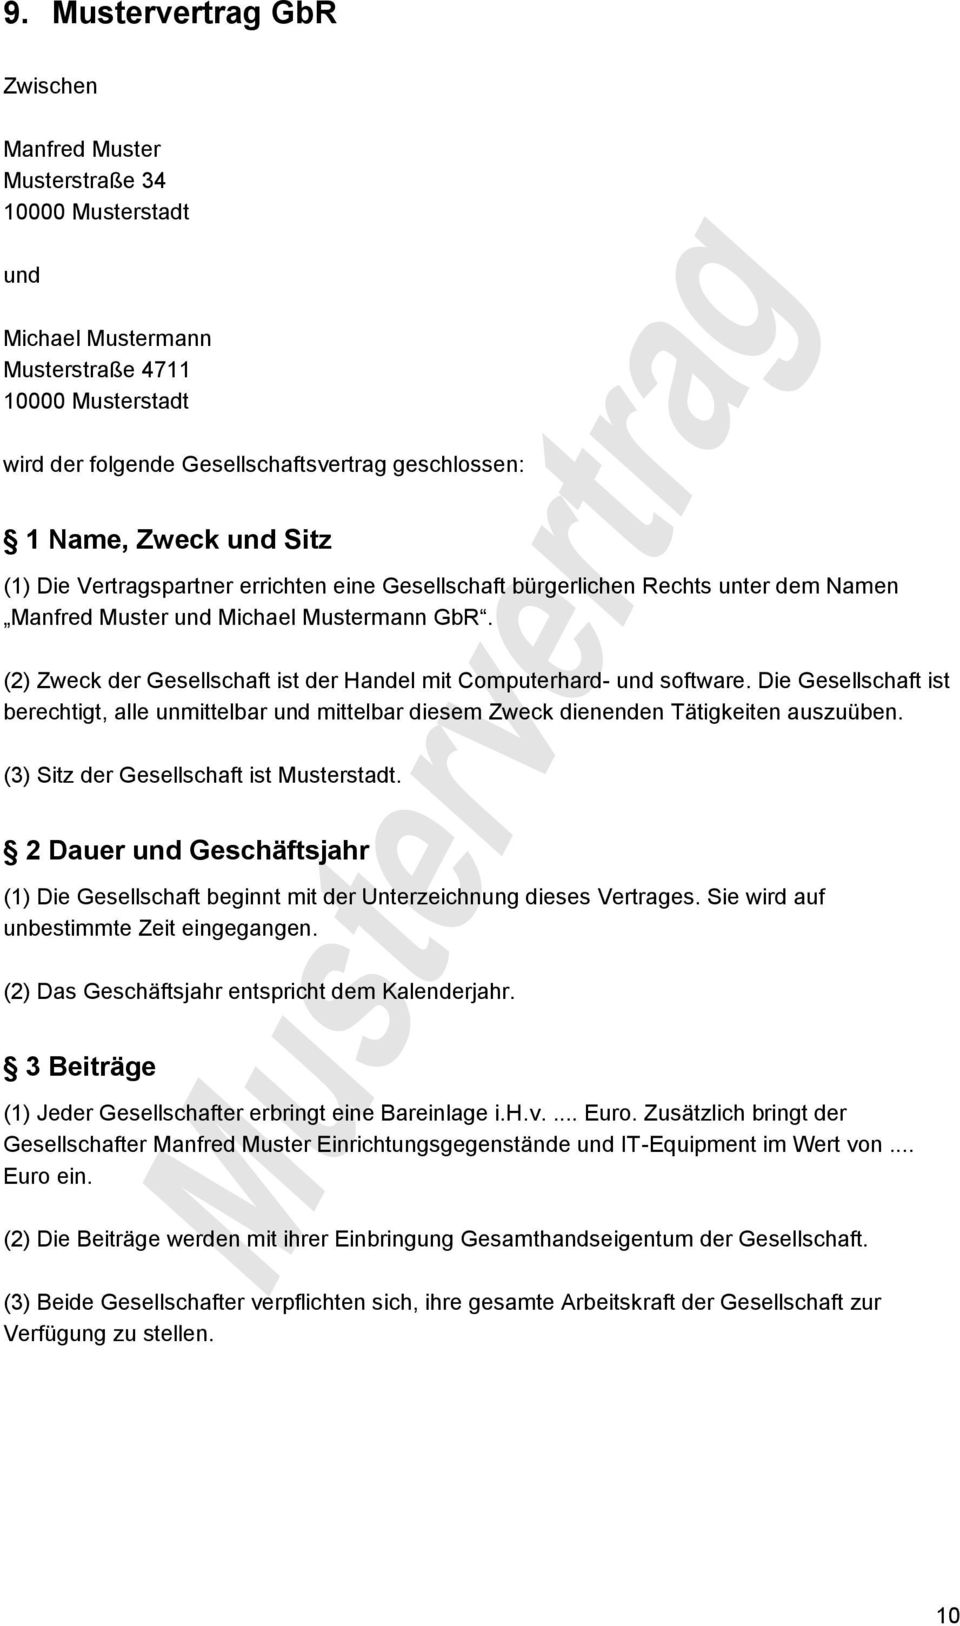 Mustervertrag Gbr Vertrag Pdf Free Download 8 2